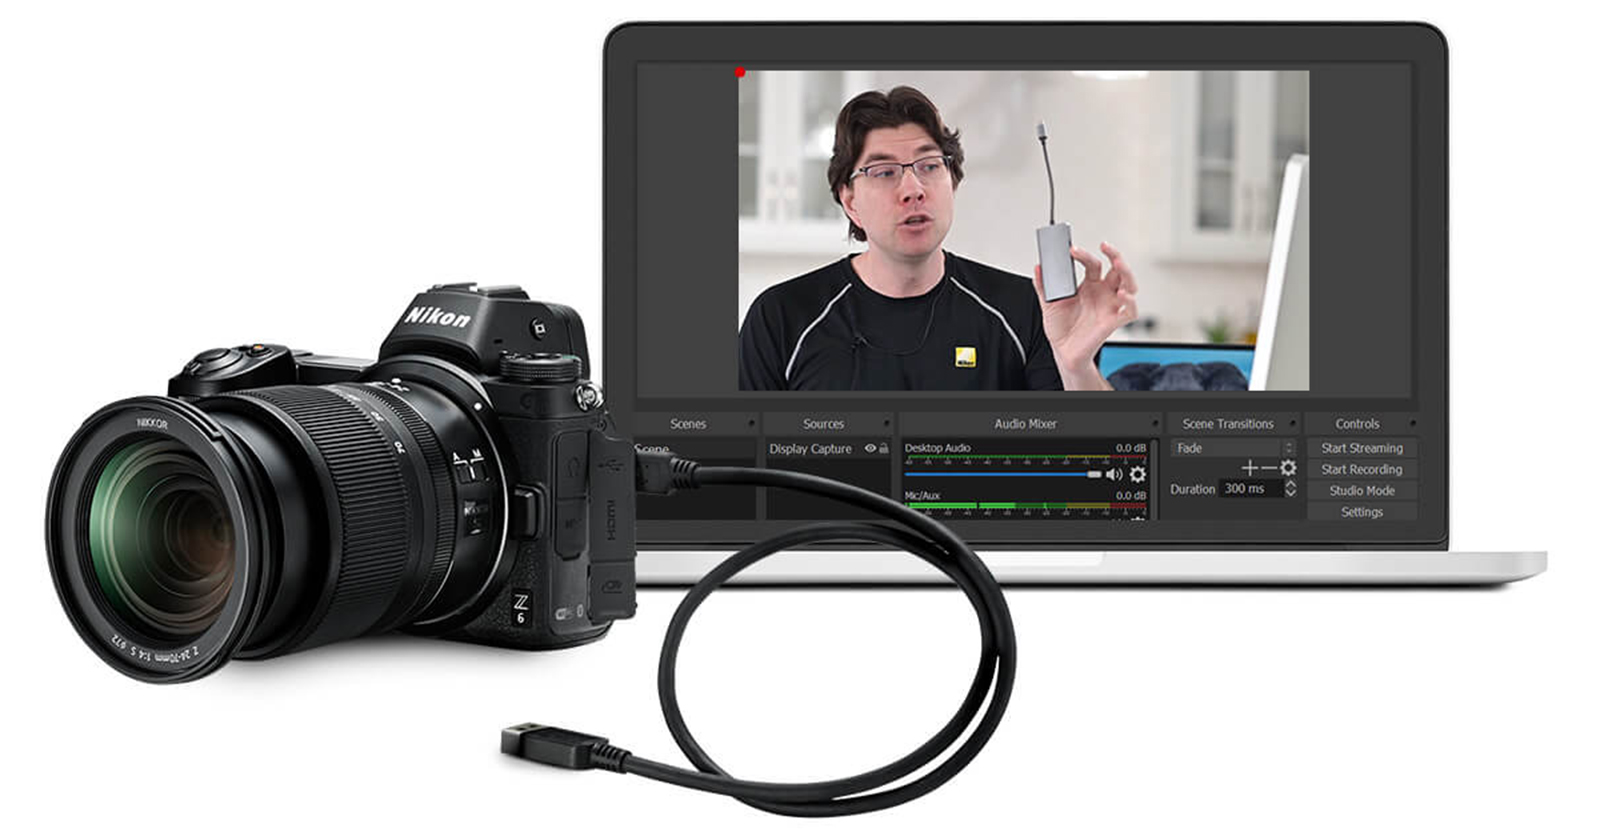 Use your camera as a Webcam w/ Zoom - No hardware required.